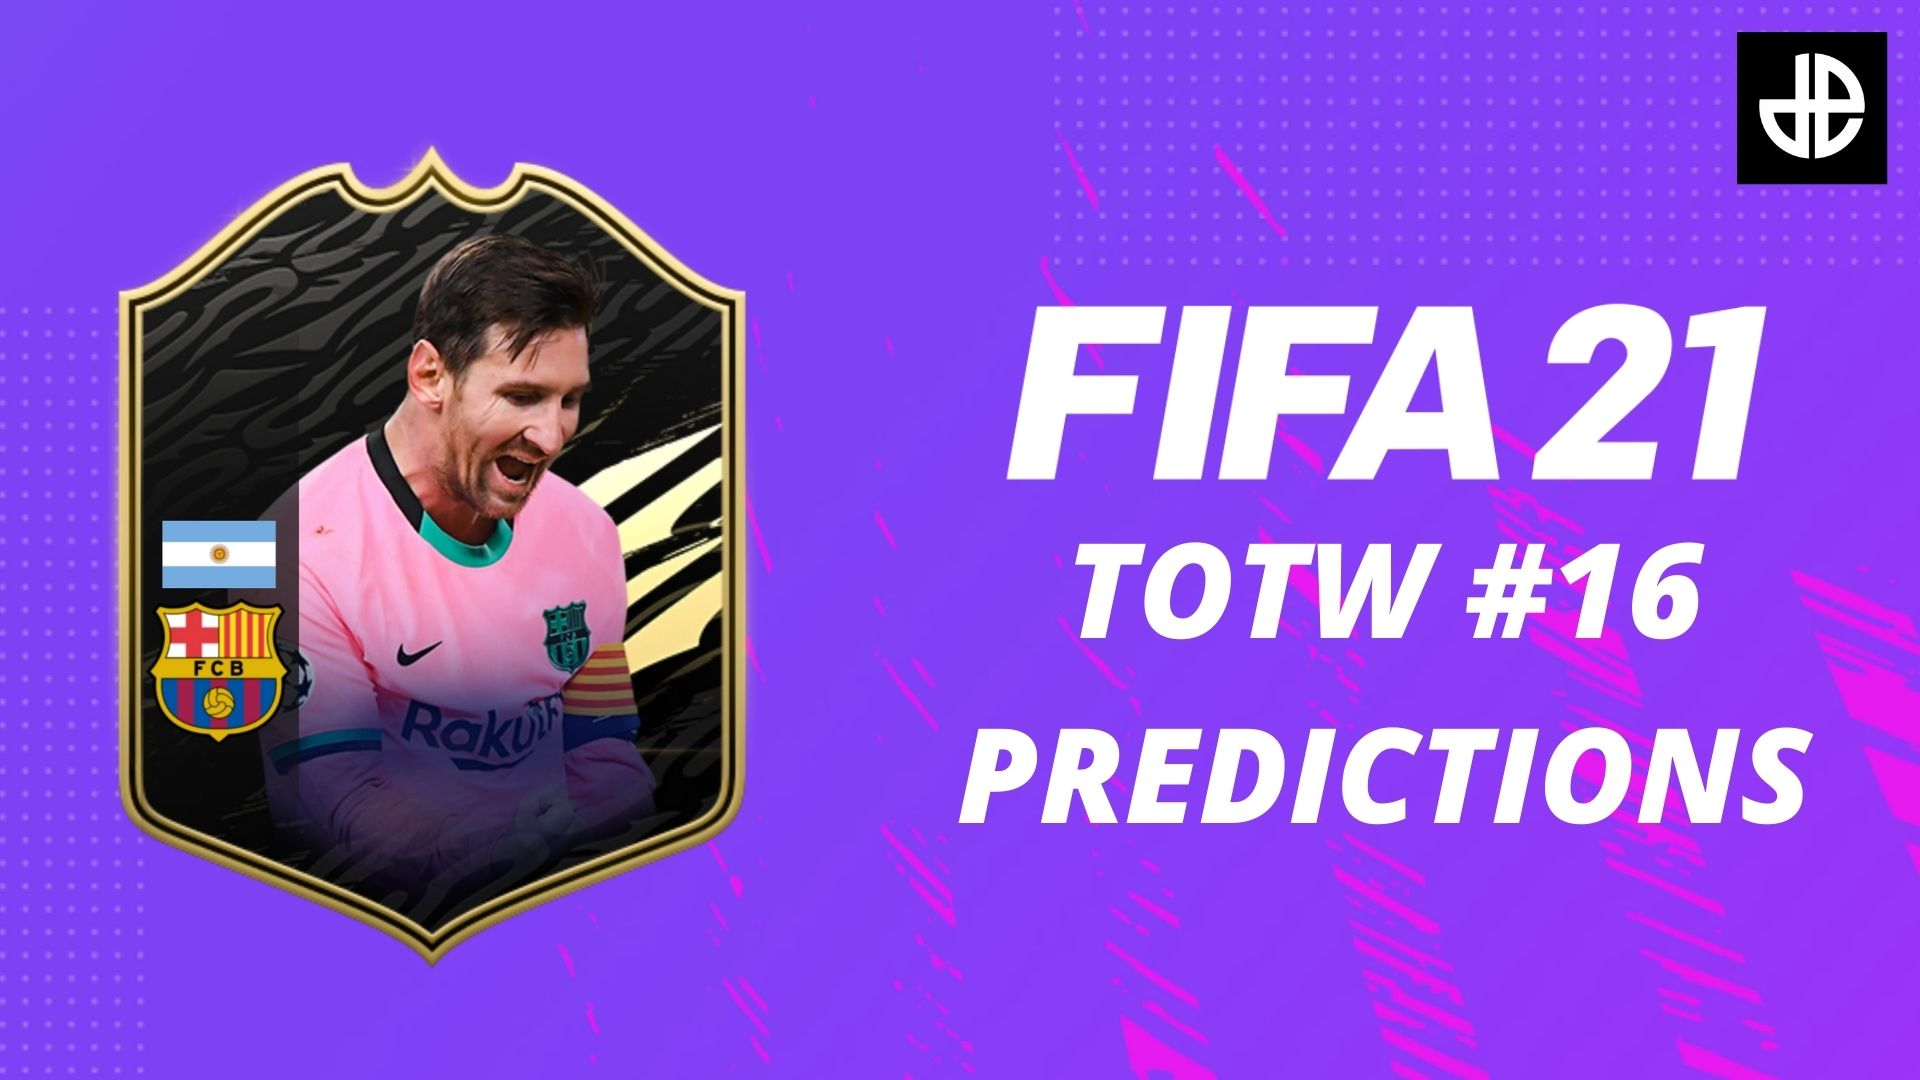 FIFA 21 TOTW 16 predictions with a Lionel Messi card